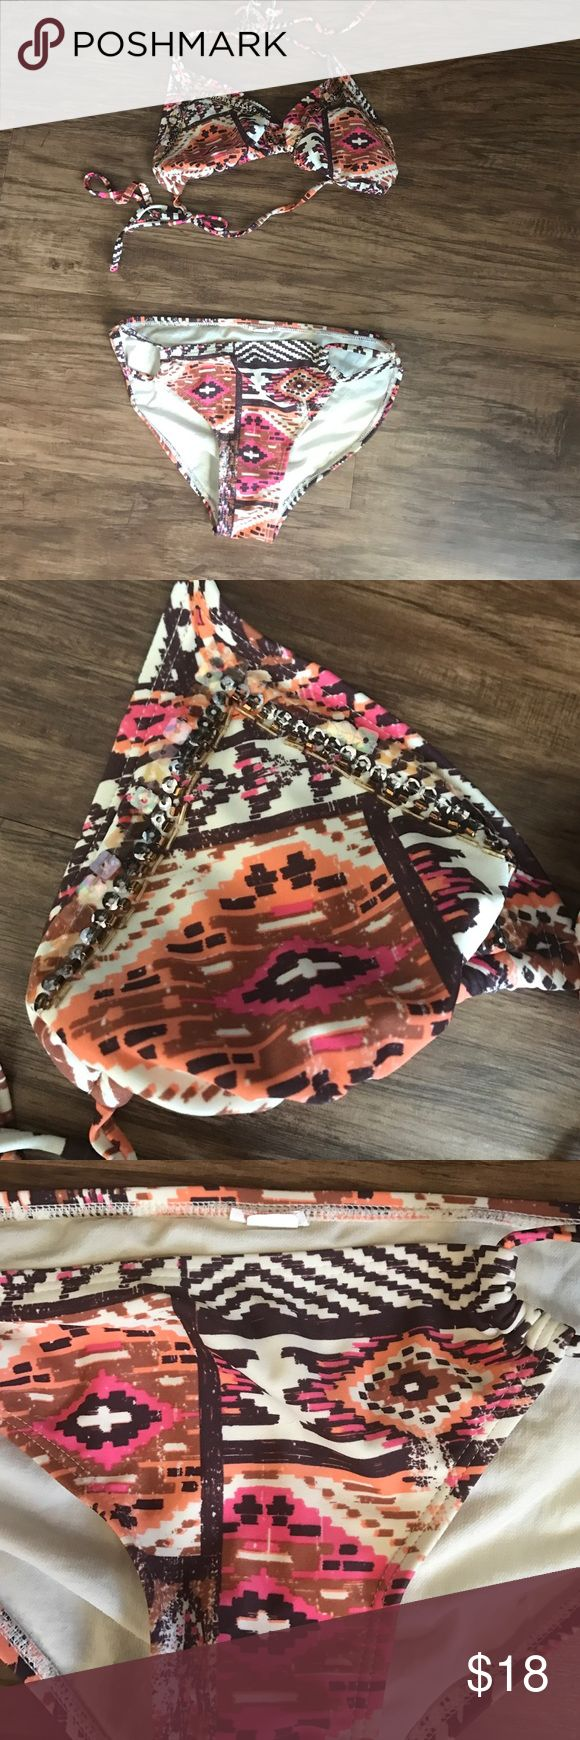 Tribal/Aztec print bikini Great condition!! Worn a few times but no stains, holes, or imperfections. Size XS top and bottom, although the tag is cut out of the bottom because it would stick out. Top is padded, full coverage bottoms. Xhilaration Swim Bikinis